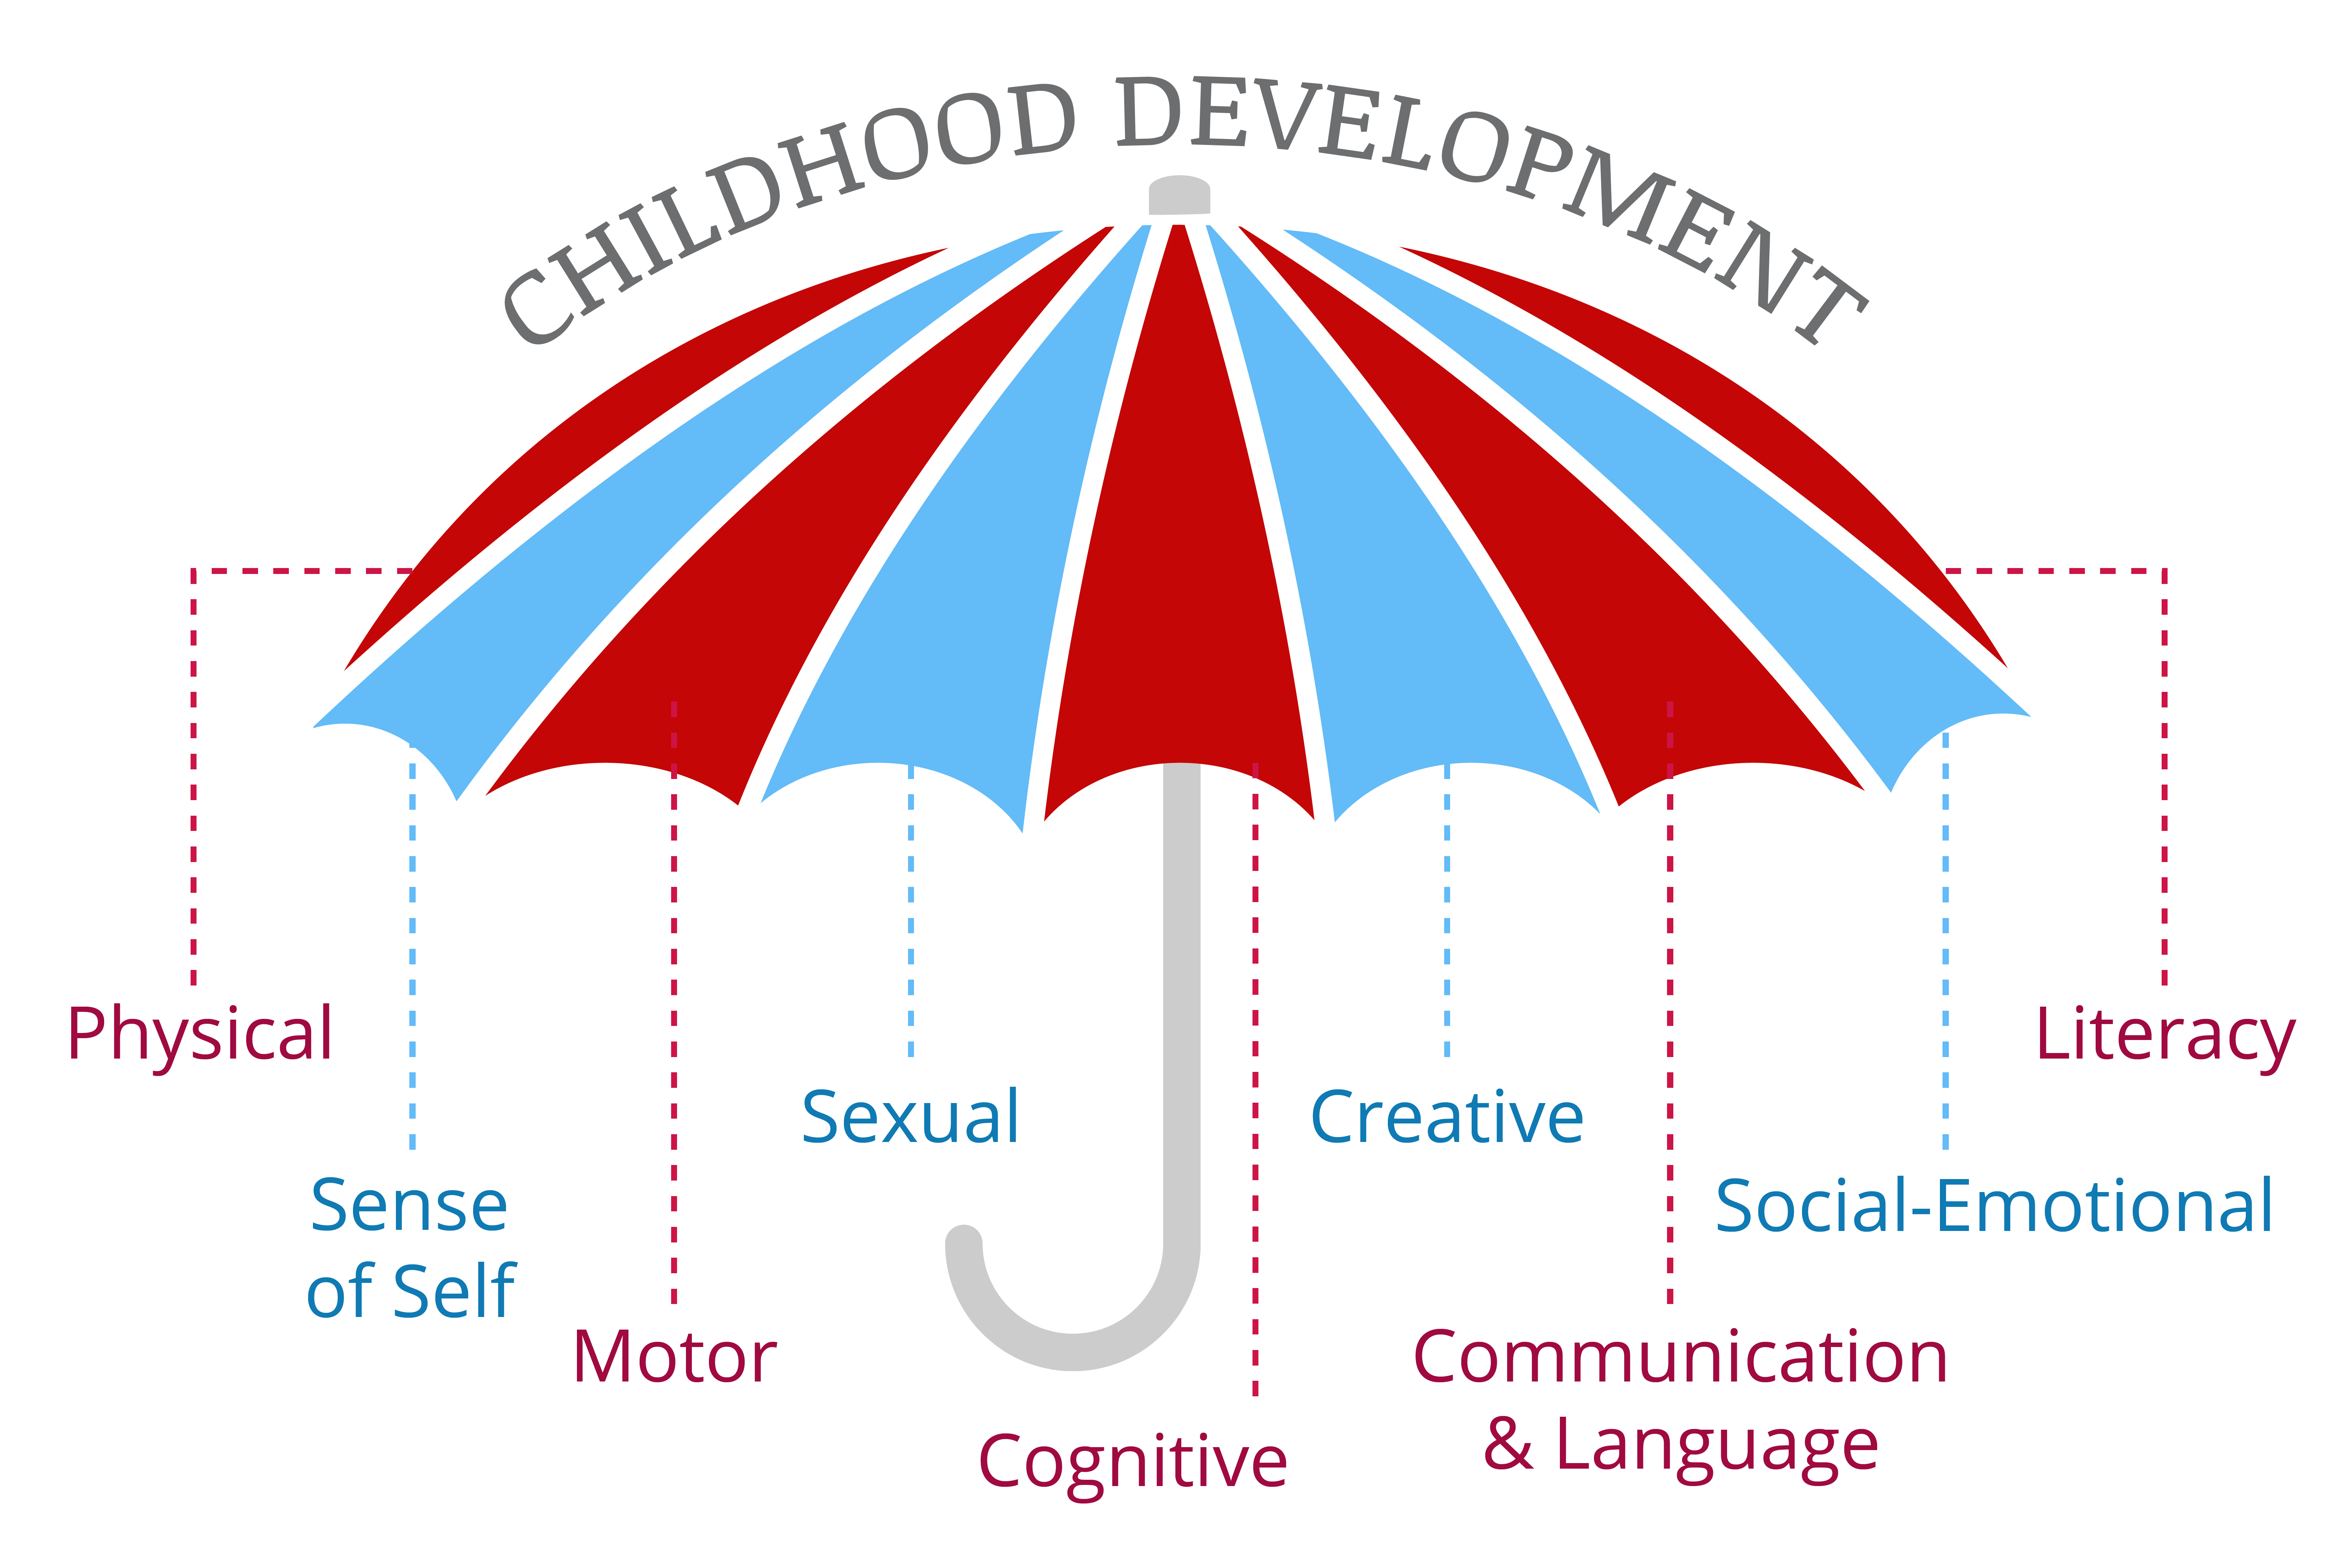 Child Development Umbrella covering the topics of: Physical, Sense of Slef, Motor,Sexual, Cognitive, Creative, Comunicatioon & Language, Social-Emotional, and Literacy